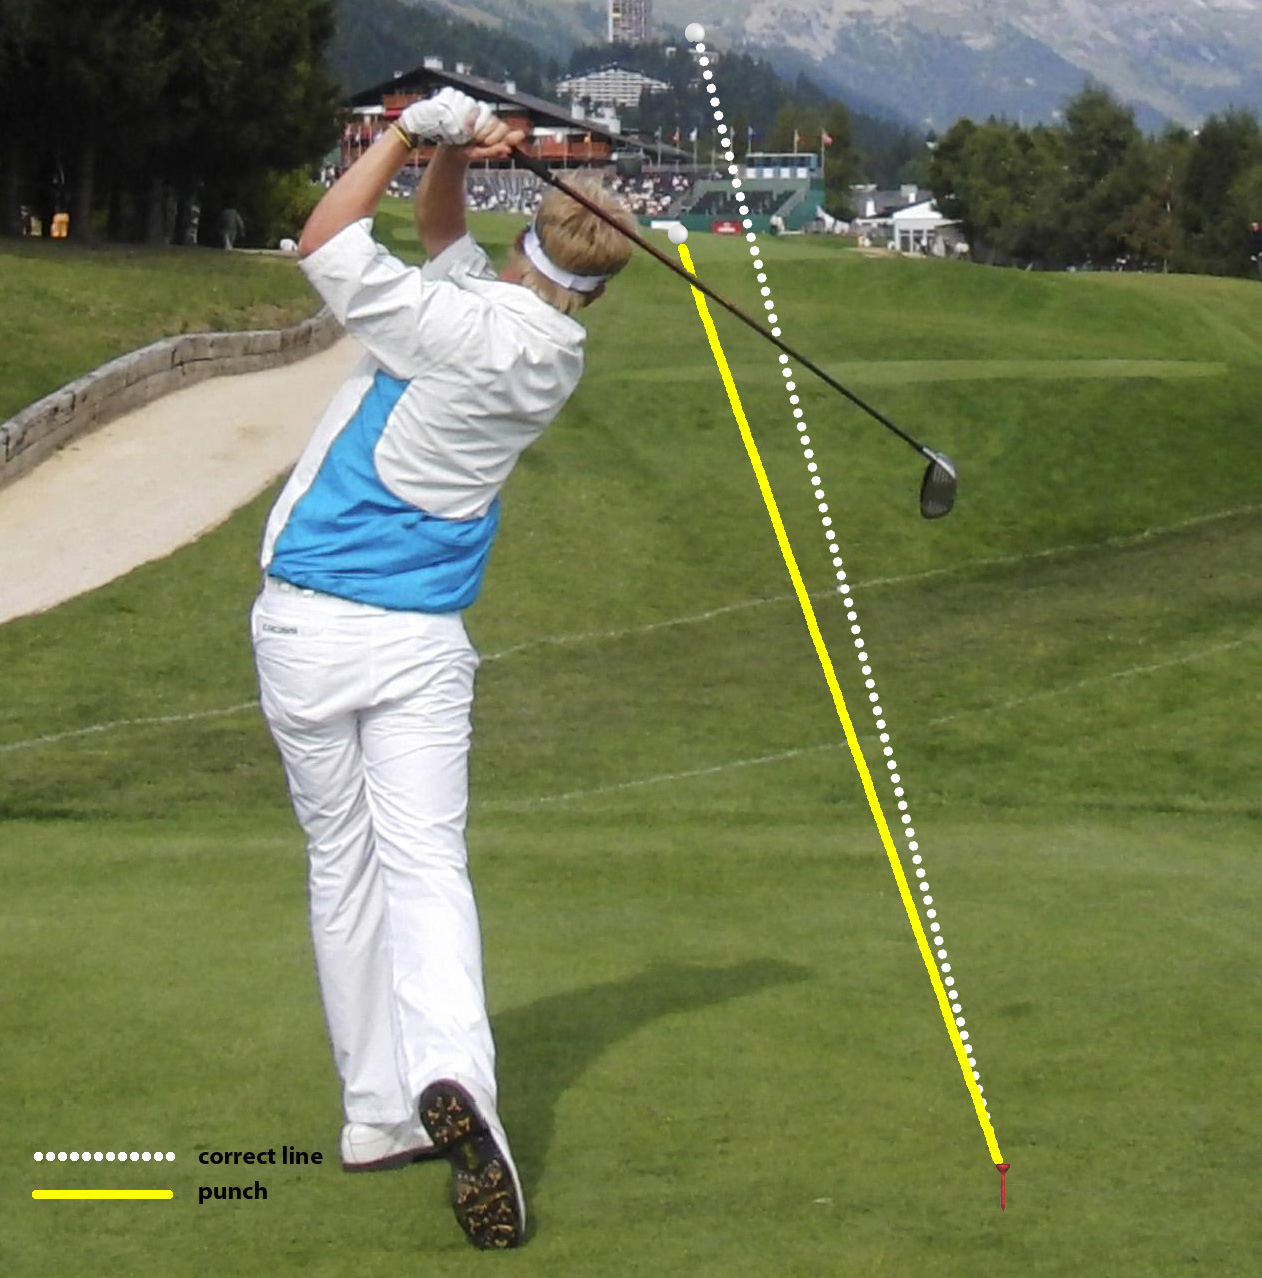 Golf swing tips - 10: How to hit a punch shot